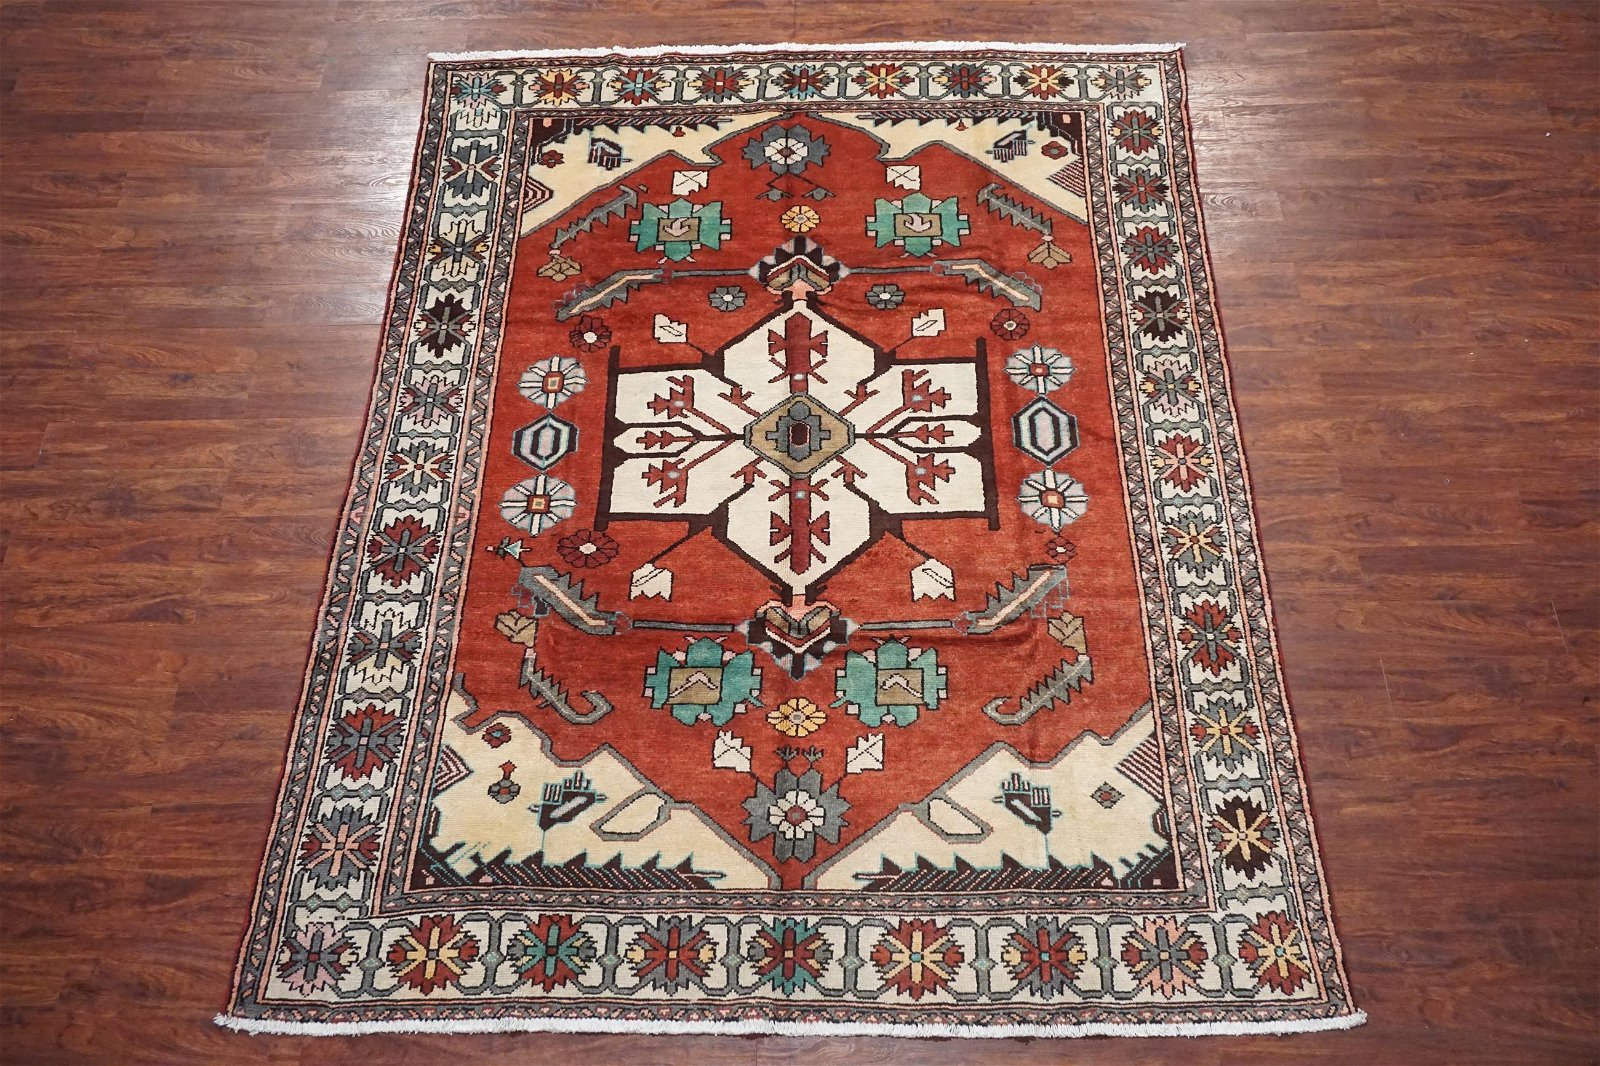 7X9 Antique Persian Serapi Hand-Knotted Wool Rug, circa